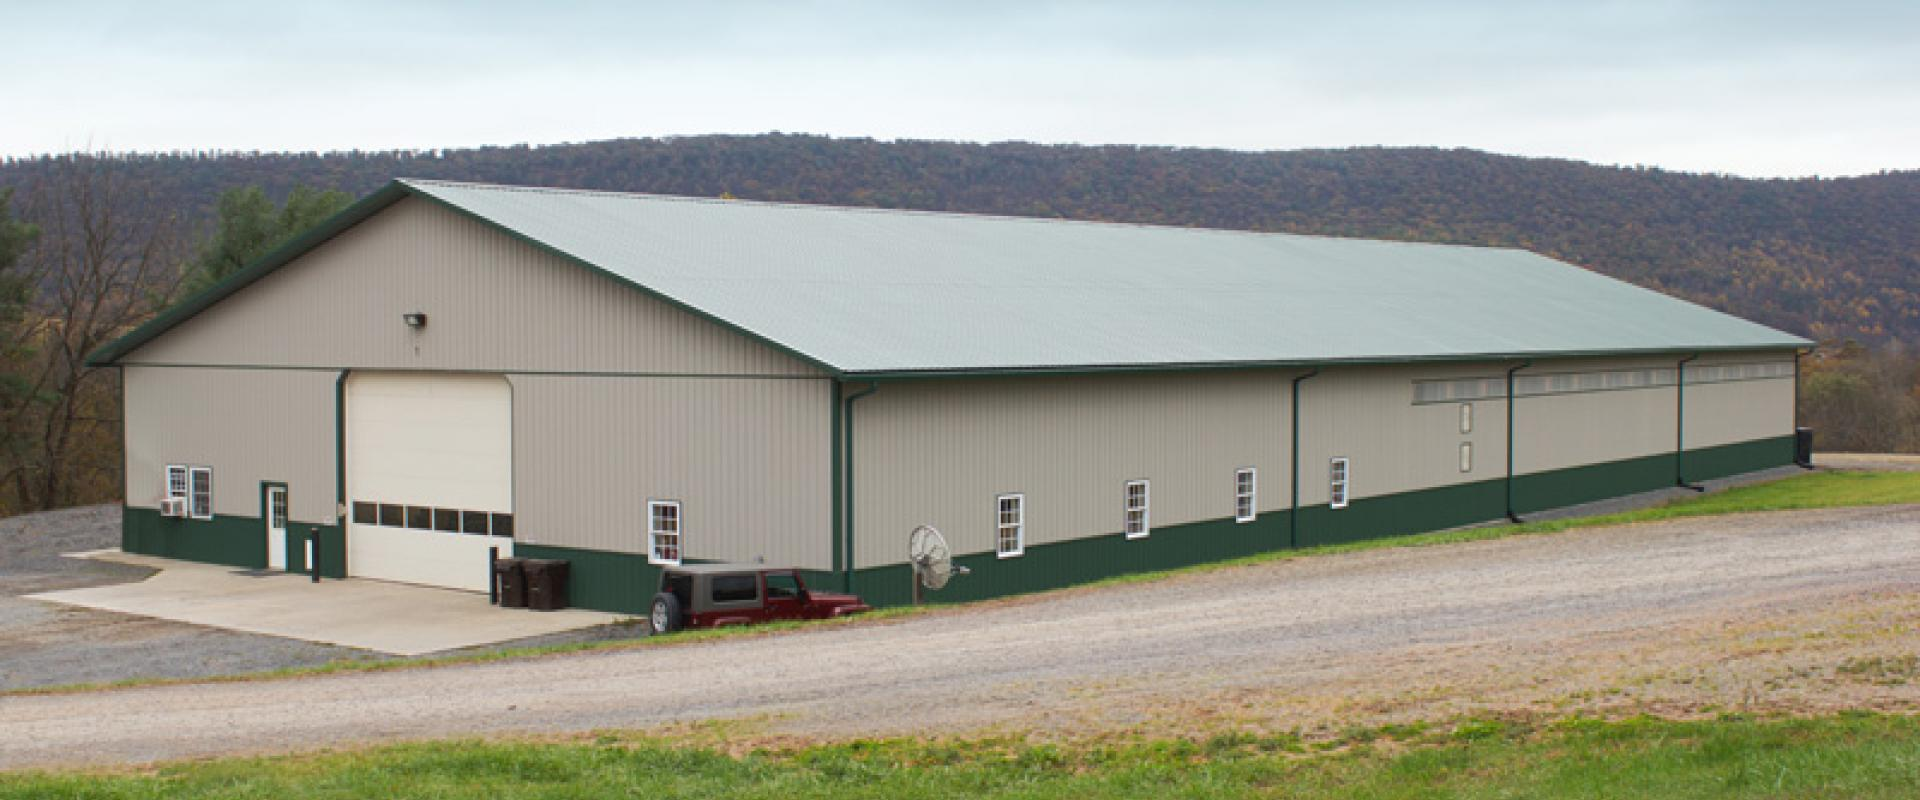 Pole barns pole buildings timberline buildings hegins pa for Pole building images